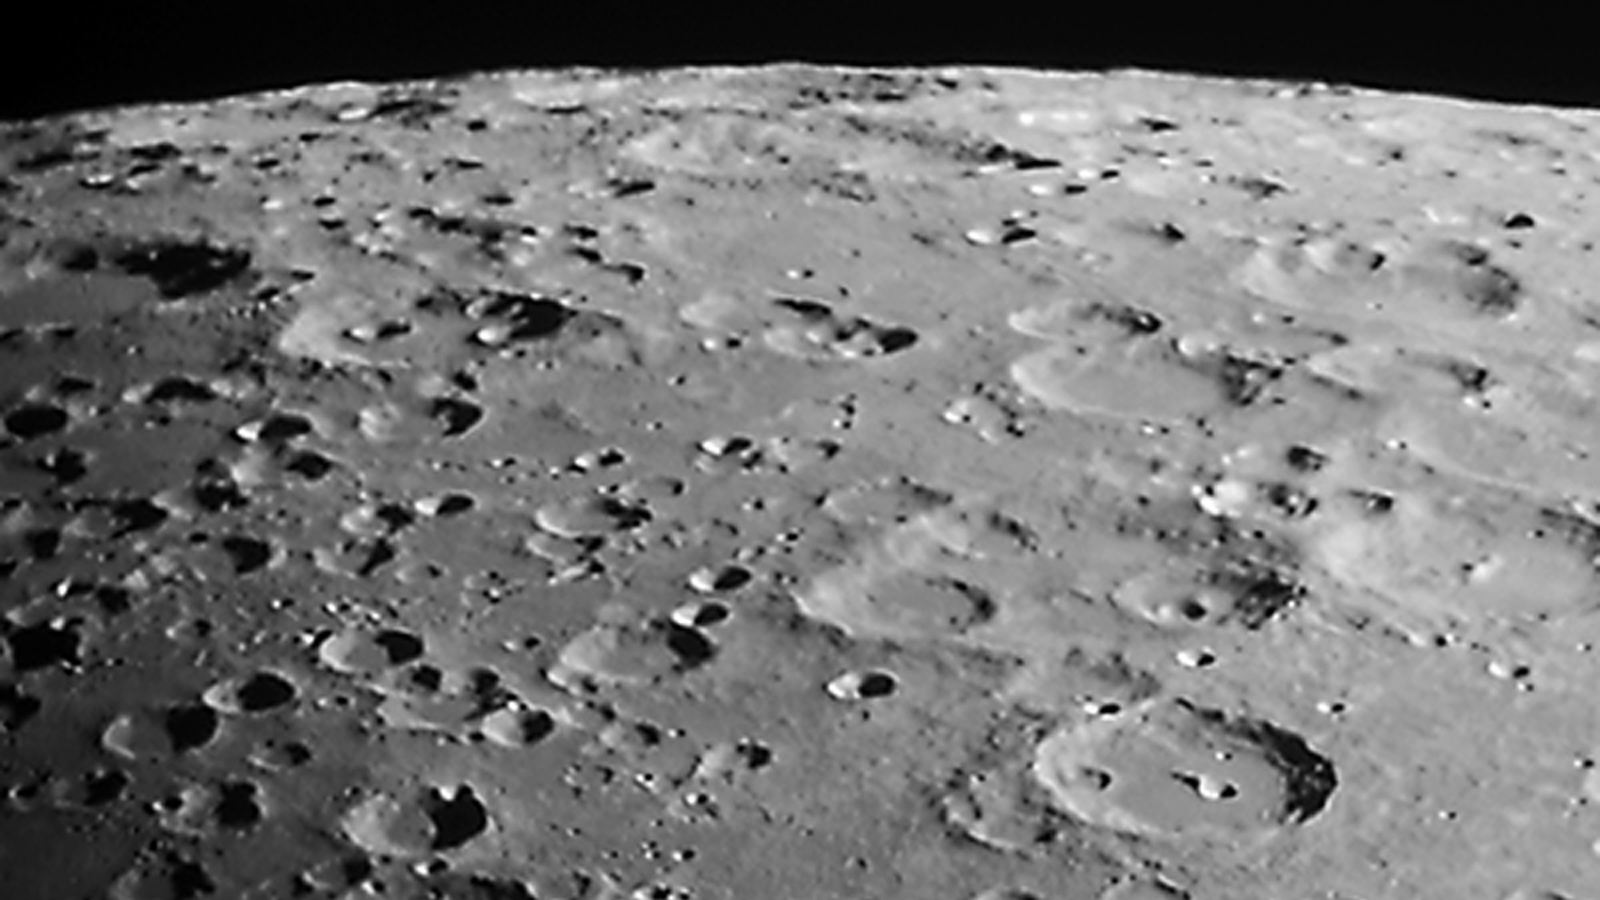 Moon_Feature_07_CourtesyErikaBlumenfeld_2004.jpg